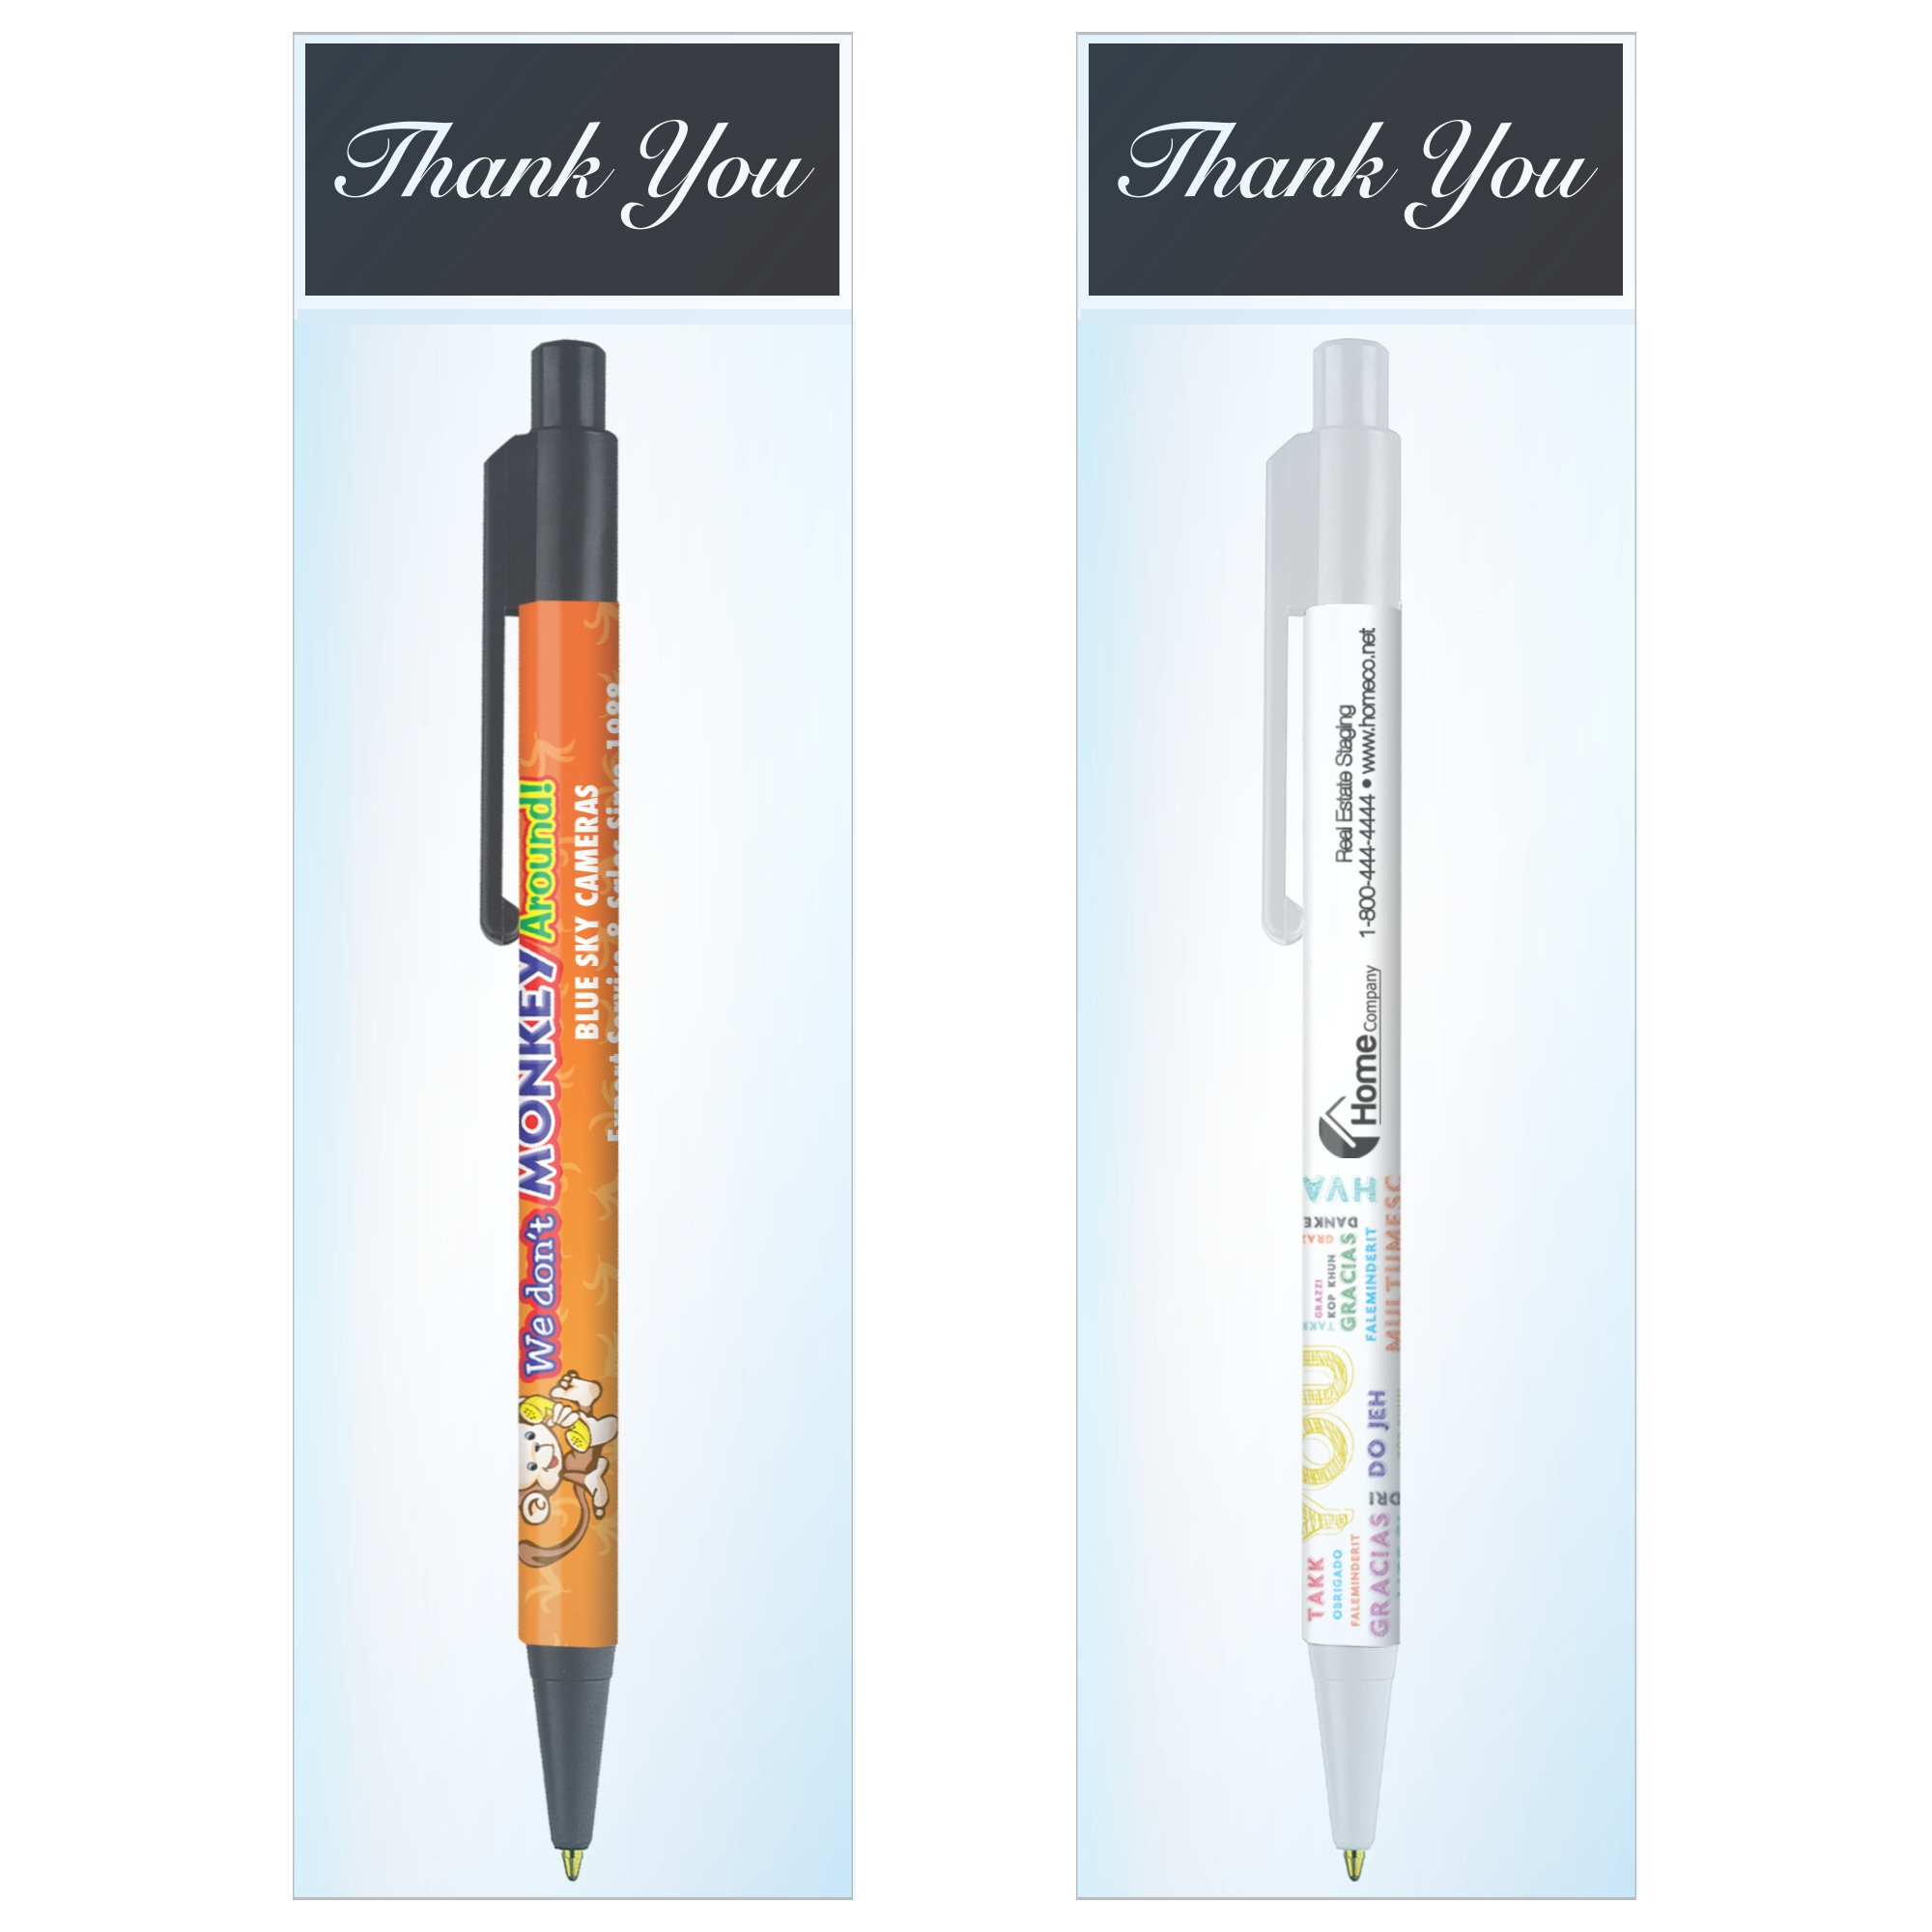 Colorama Pens - Printed Promotional Pens | National Pen